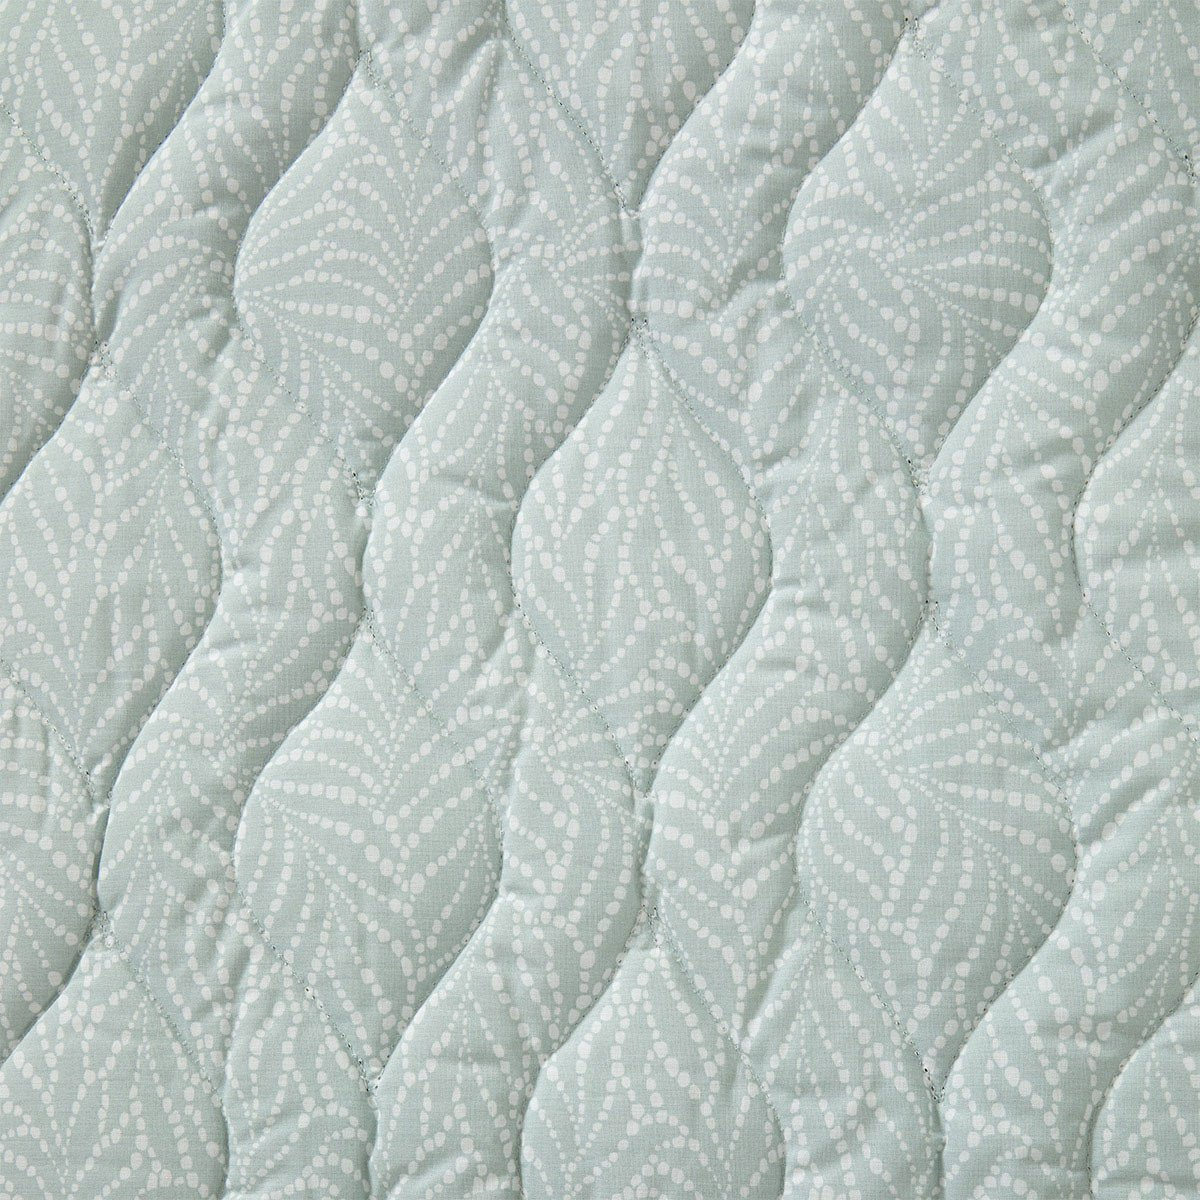 Fig Linens - Yves Delorme Bedding - Blossom Quilted Coverlet - Back